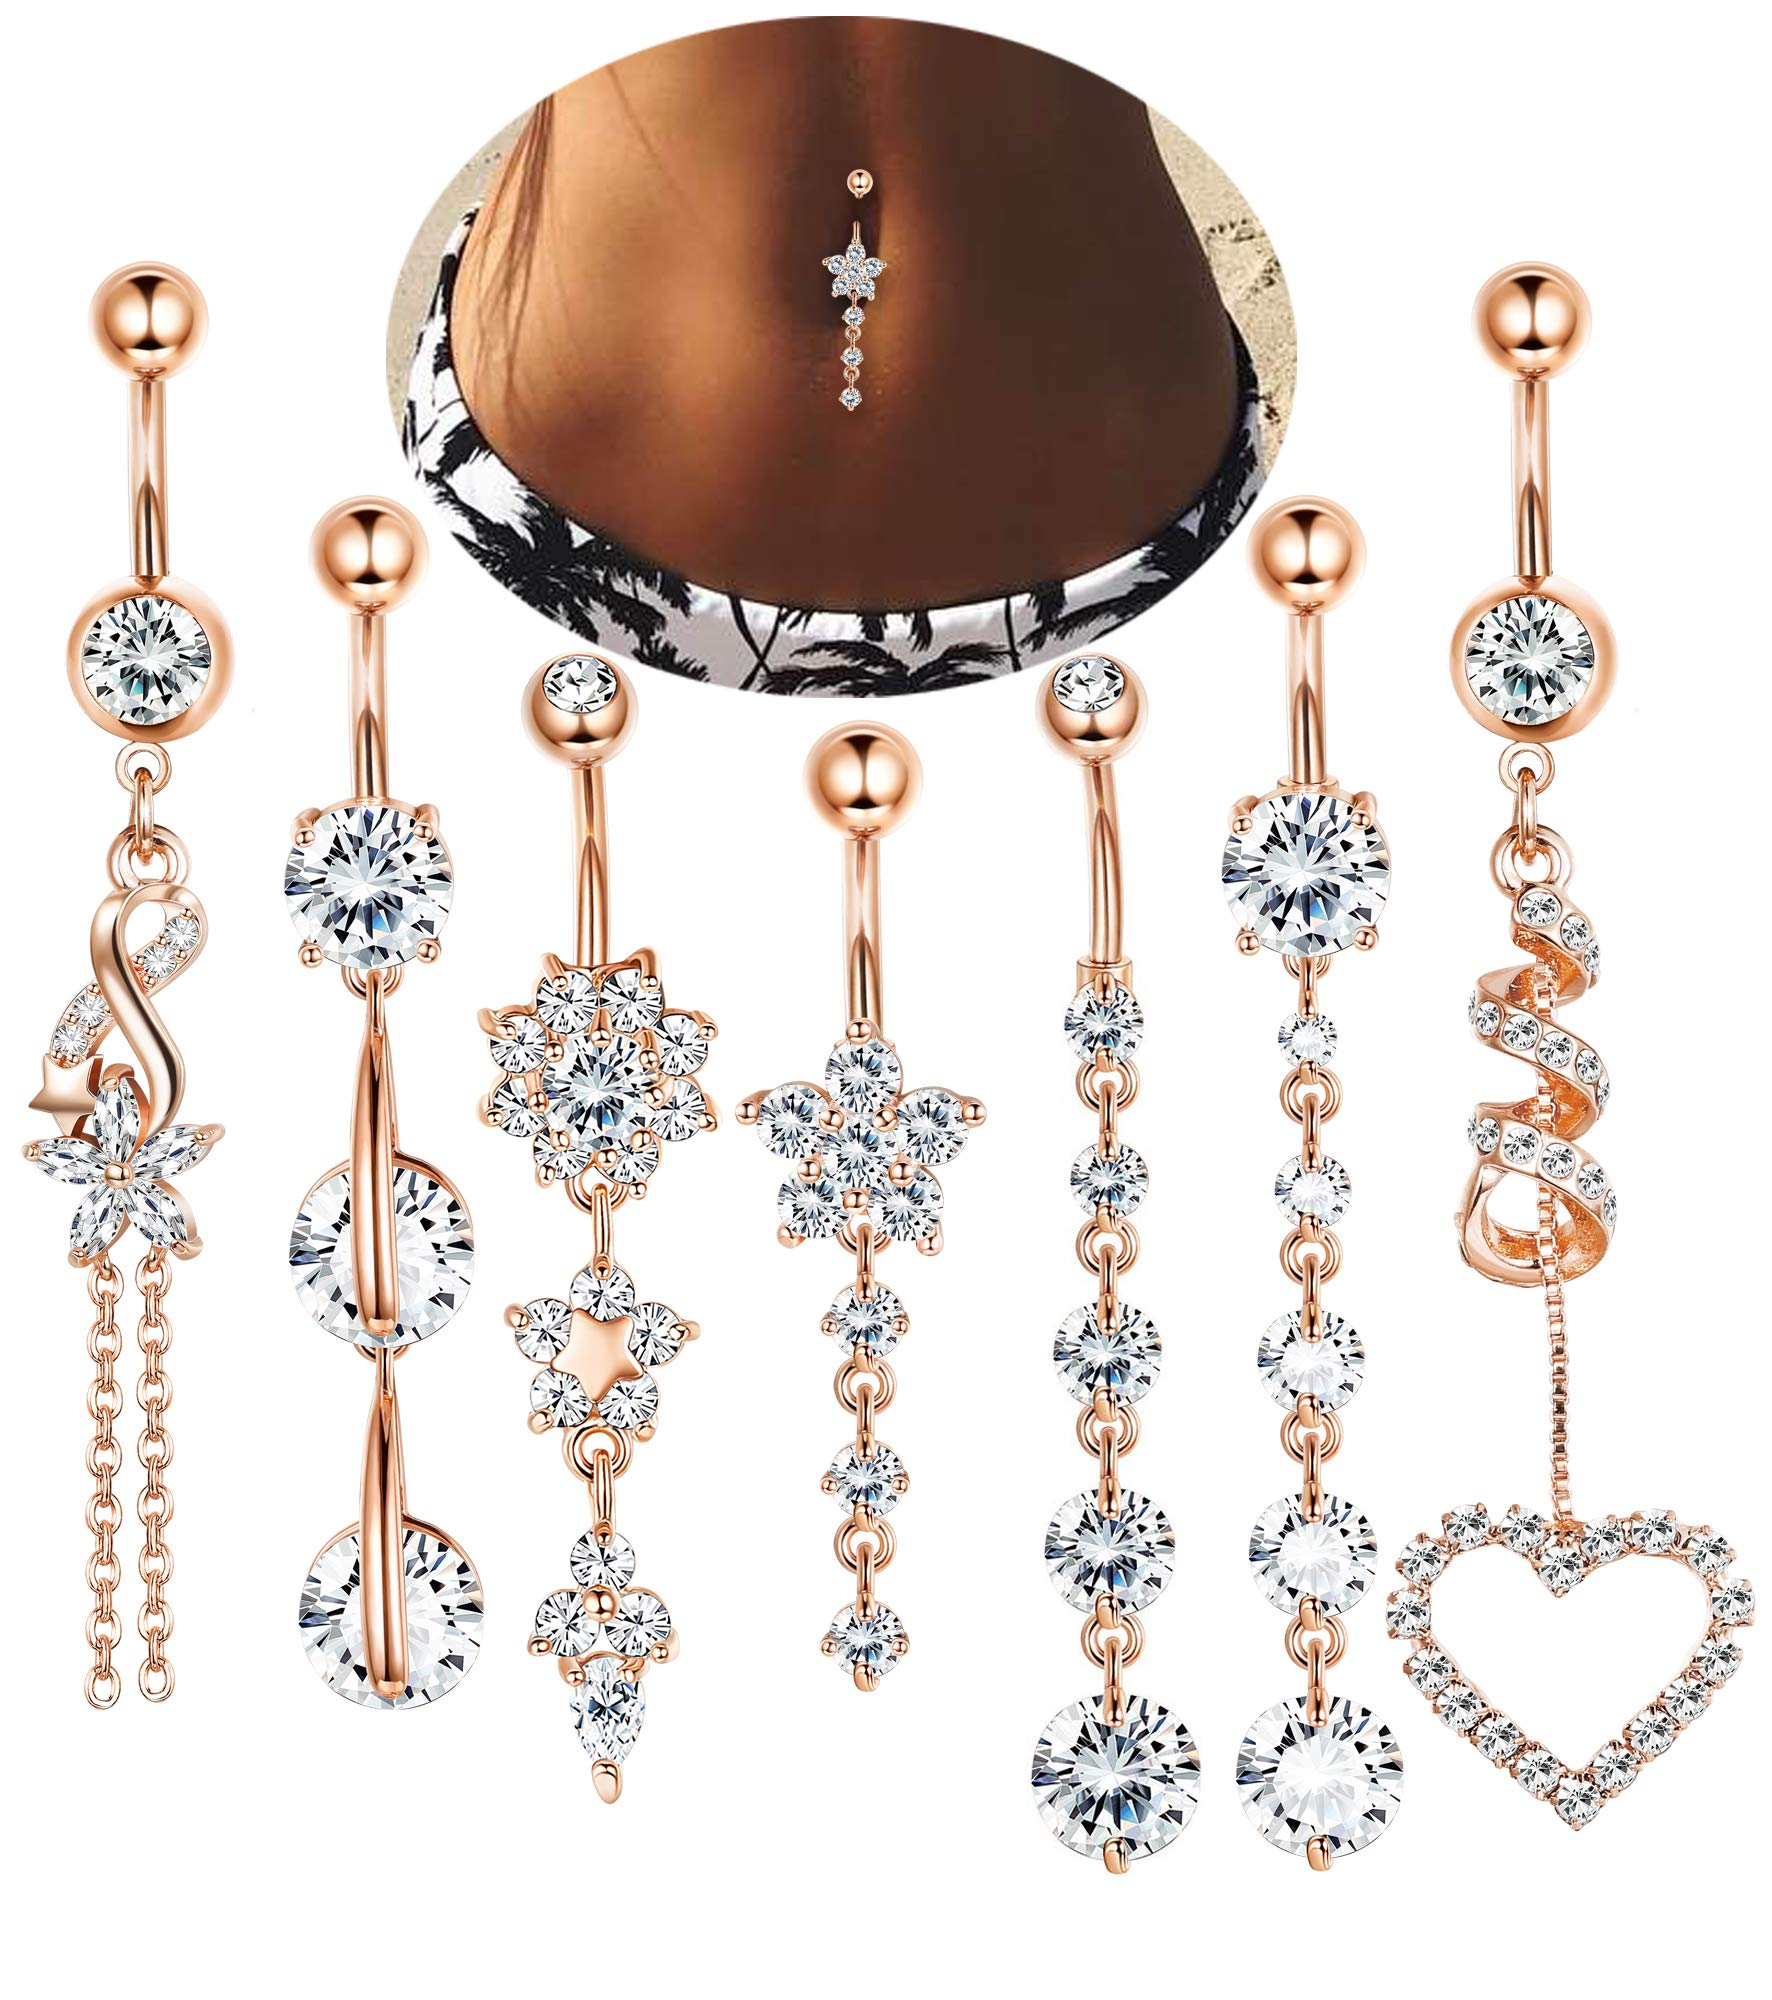 LOLIAS 7 Pcs 14G Dangle Belly Button Rings for Women Girls 316L Surgical Steel Curved Navel Barbell Body Jewelry Piercing,RG by LOLIAS